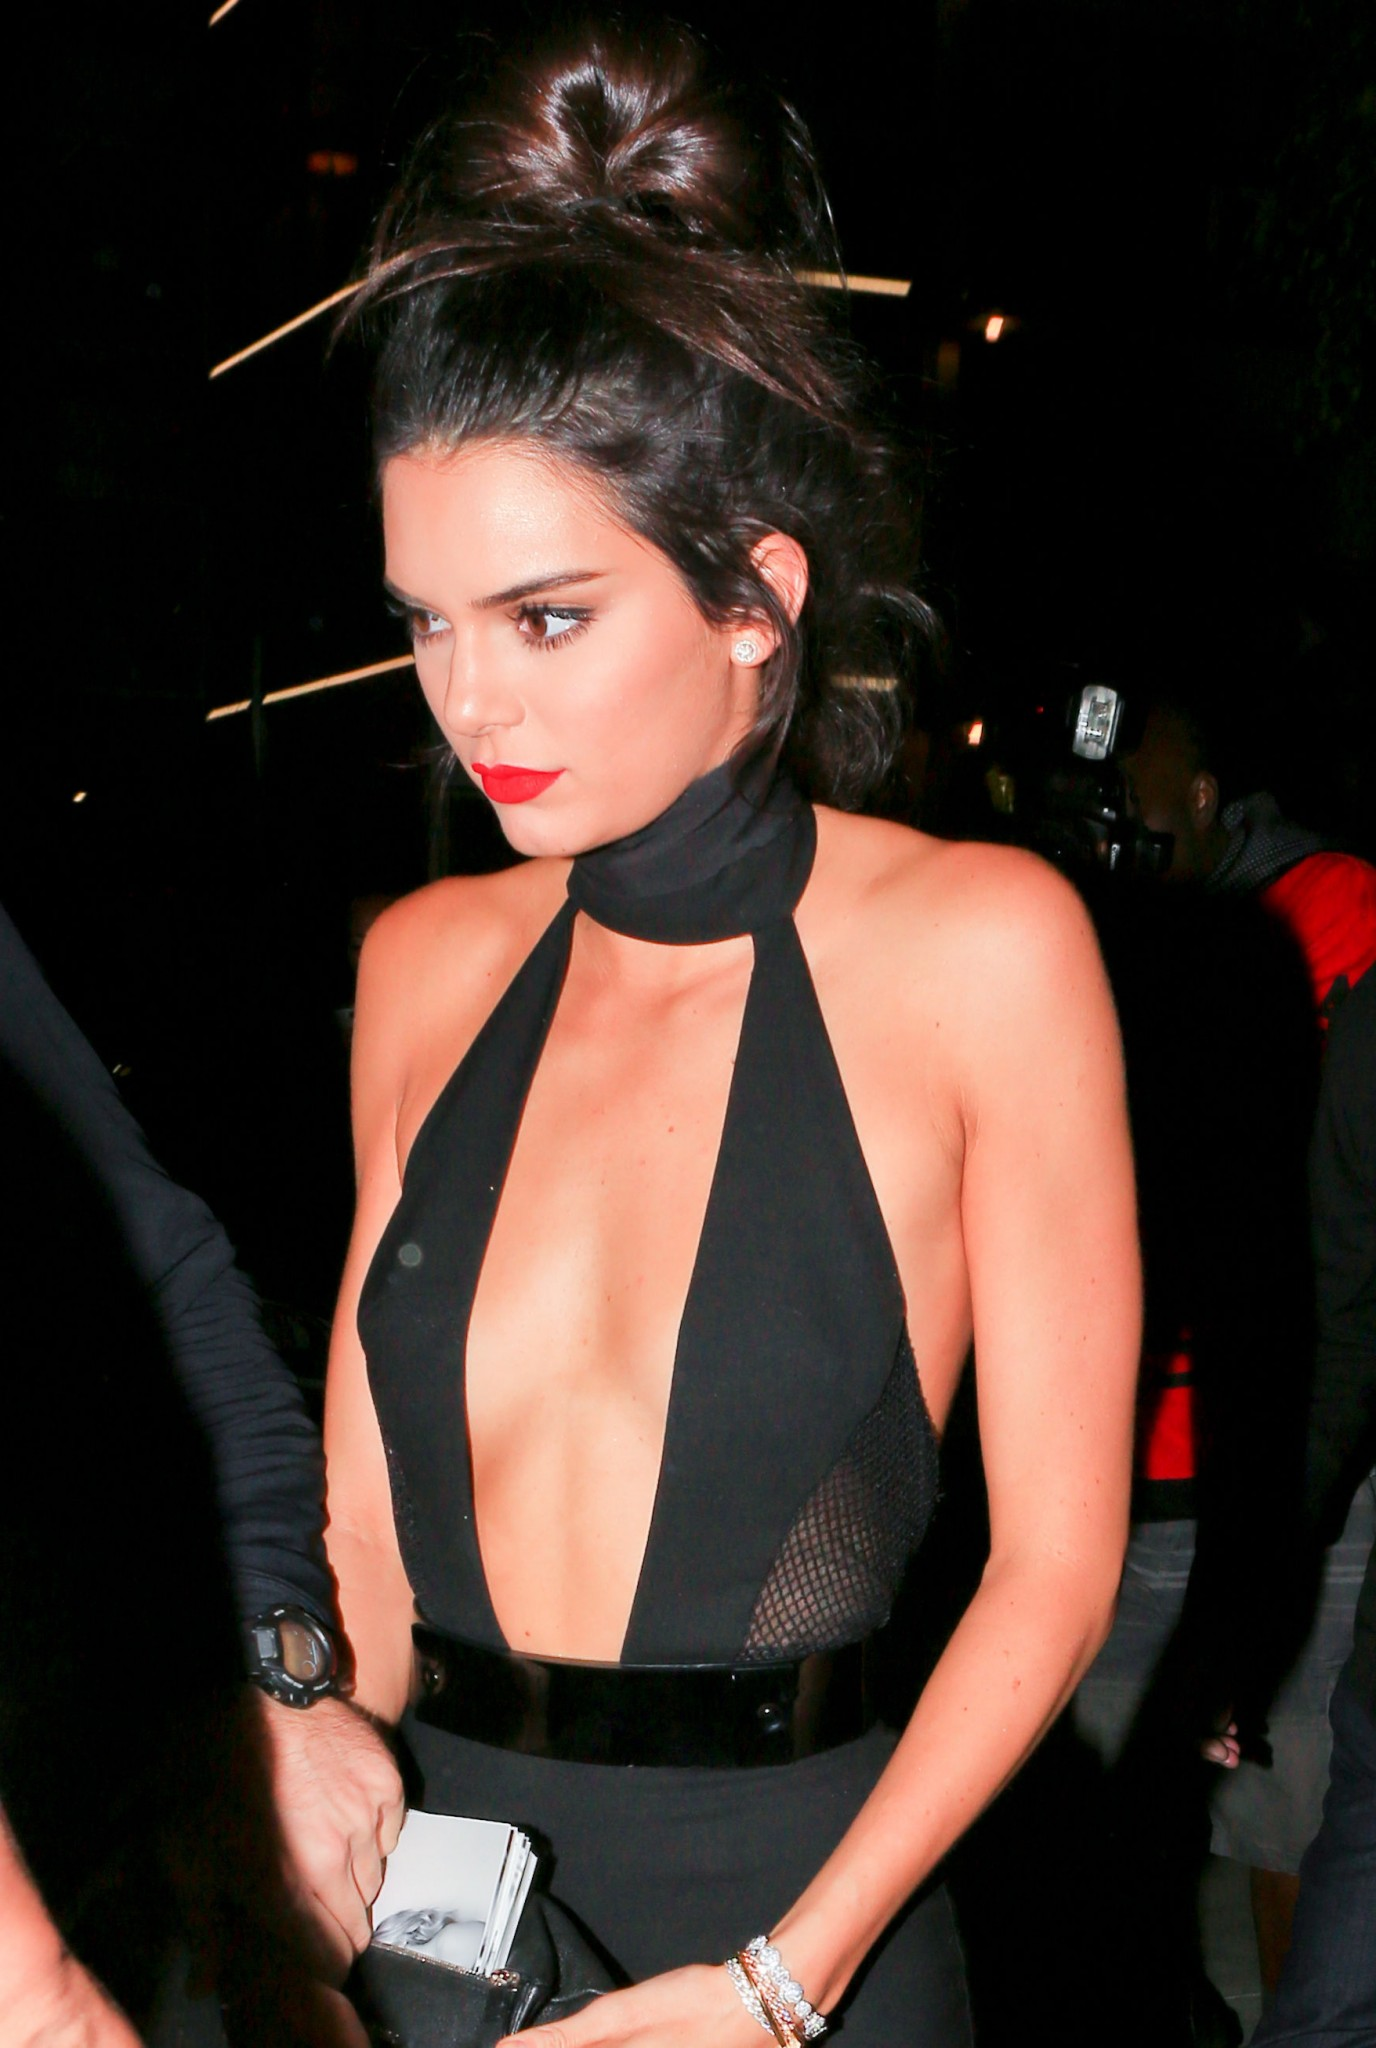 kendall-jenner-braless-cleavage-at-her-birthday-party-in-hollywood-03